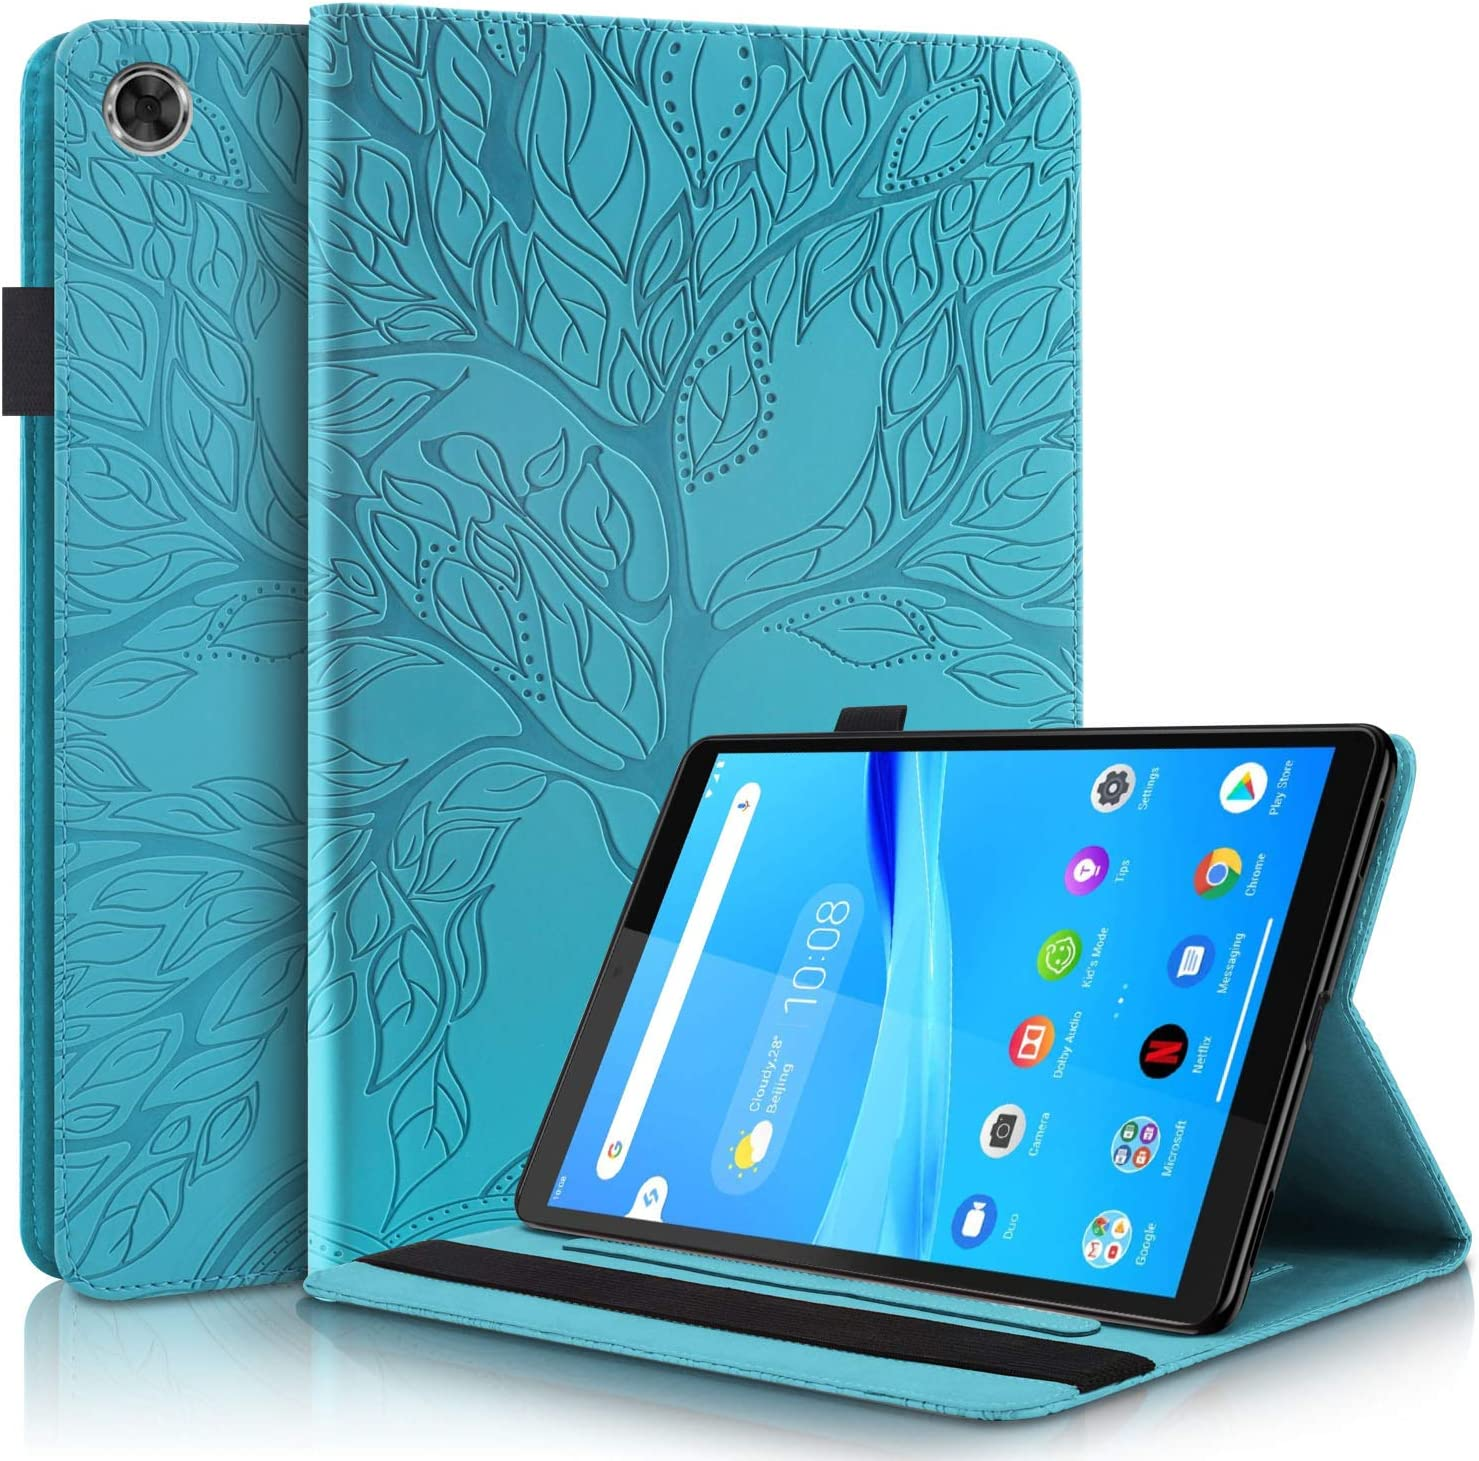 Pefcase Lenovo Tab M8 / Smart Tab M8 Case Premium PU Leather Cover Folio Stand Case Flip Wallet Shell for Lenovo Tab 8.0 inch TB-8505F / TB-8505X, TB-8505FS Tablet - Turquoise